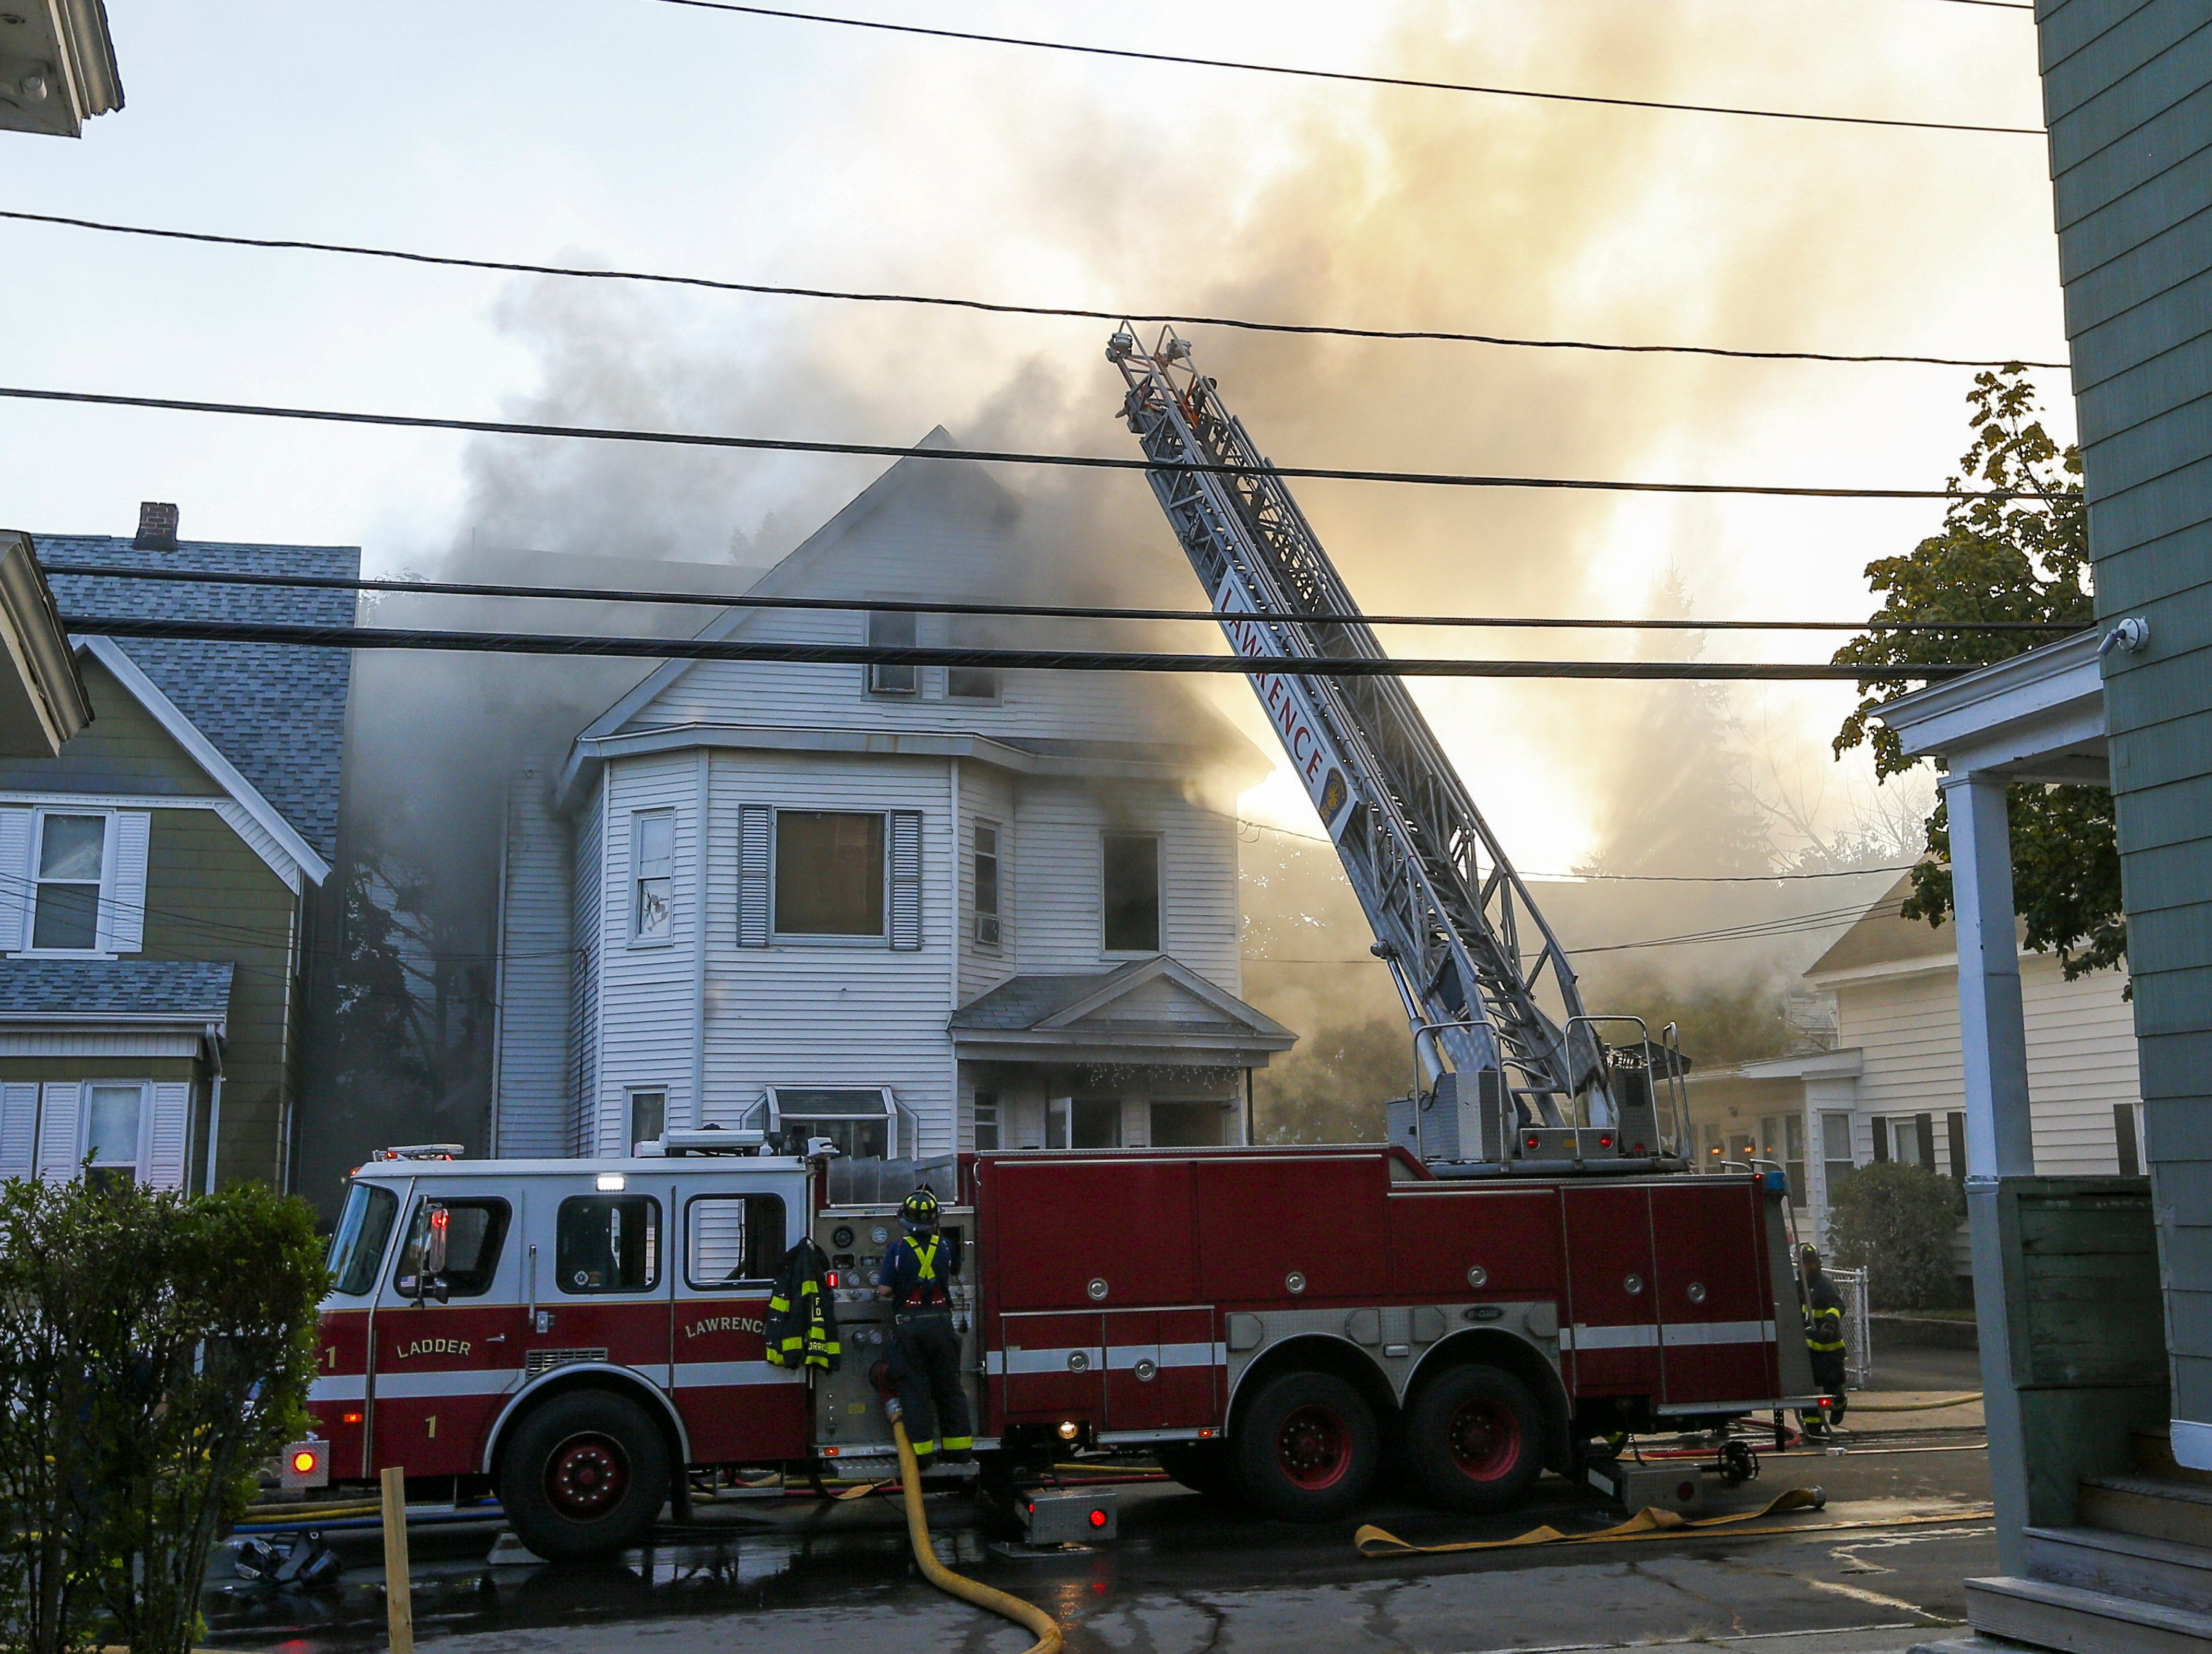 epa07018423 Firefighters battle blazes in a house in Lawrence, Massachusetts, USA, 13 September 2018. A series of reported gas explosions in towns north of Boston Massachusetts set at least 39 homes ablaze and forced mandatory evacuation for residents.